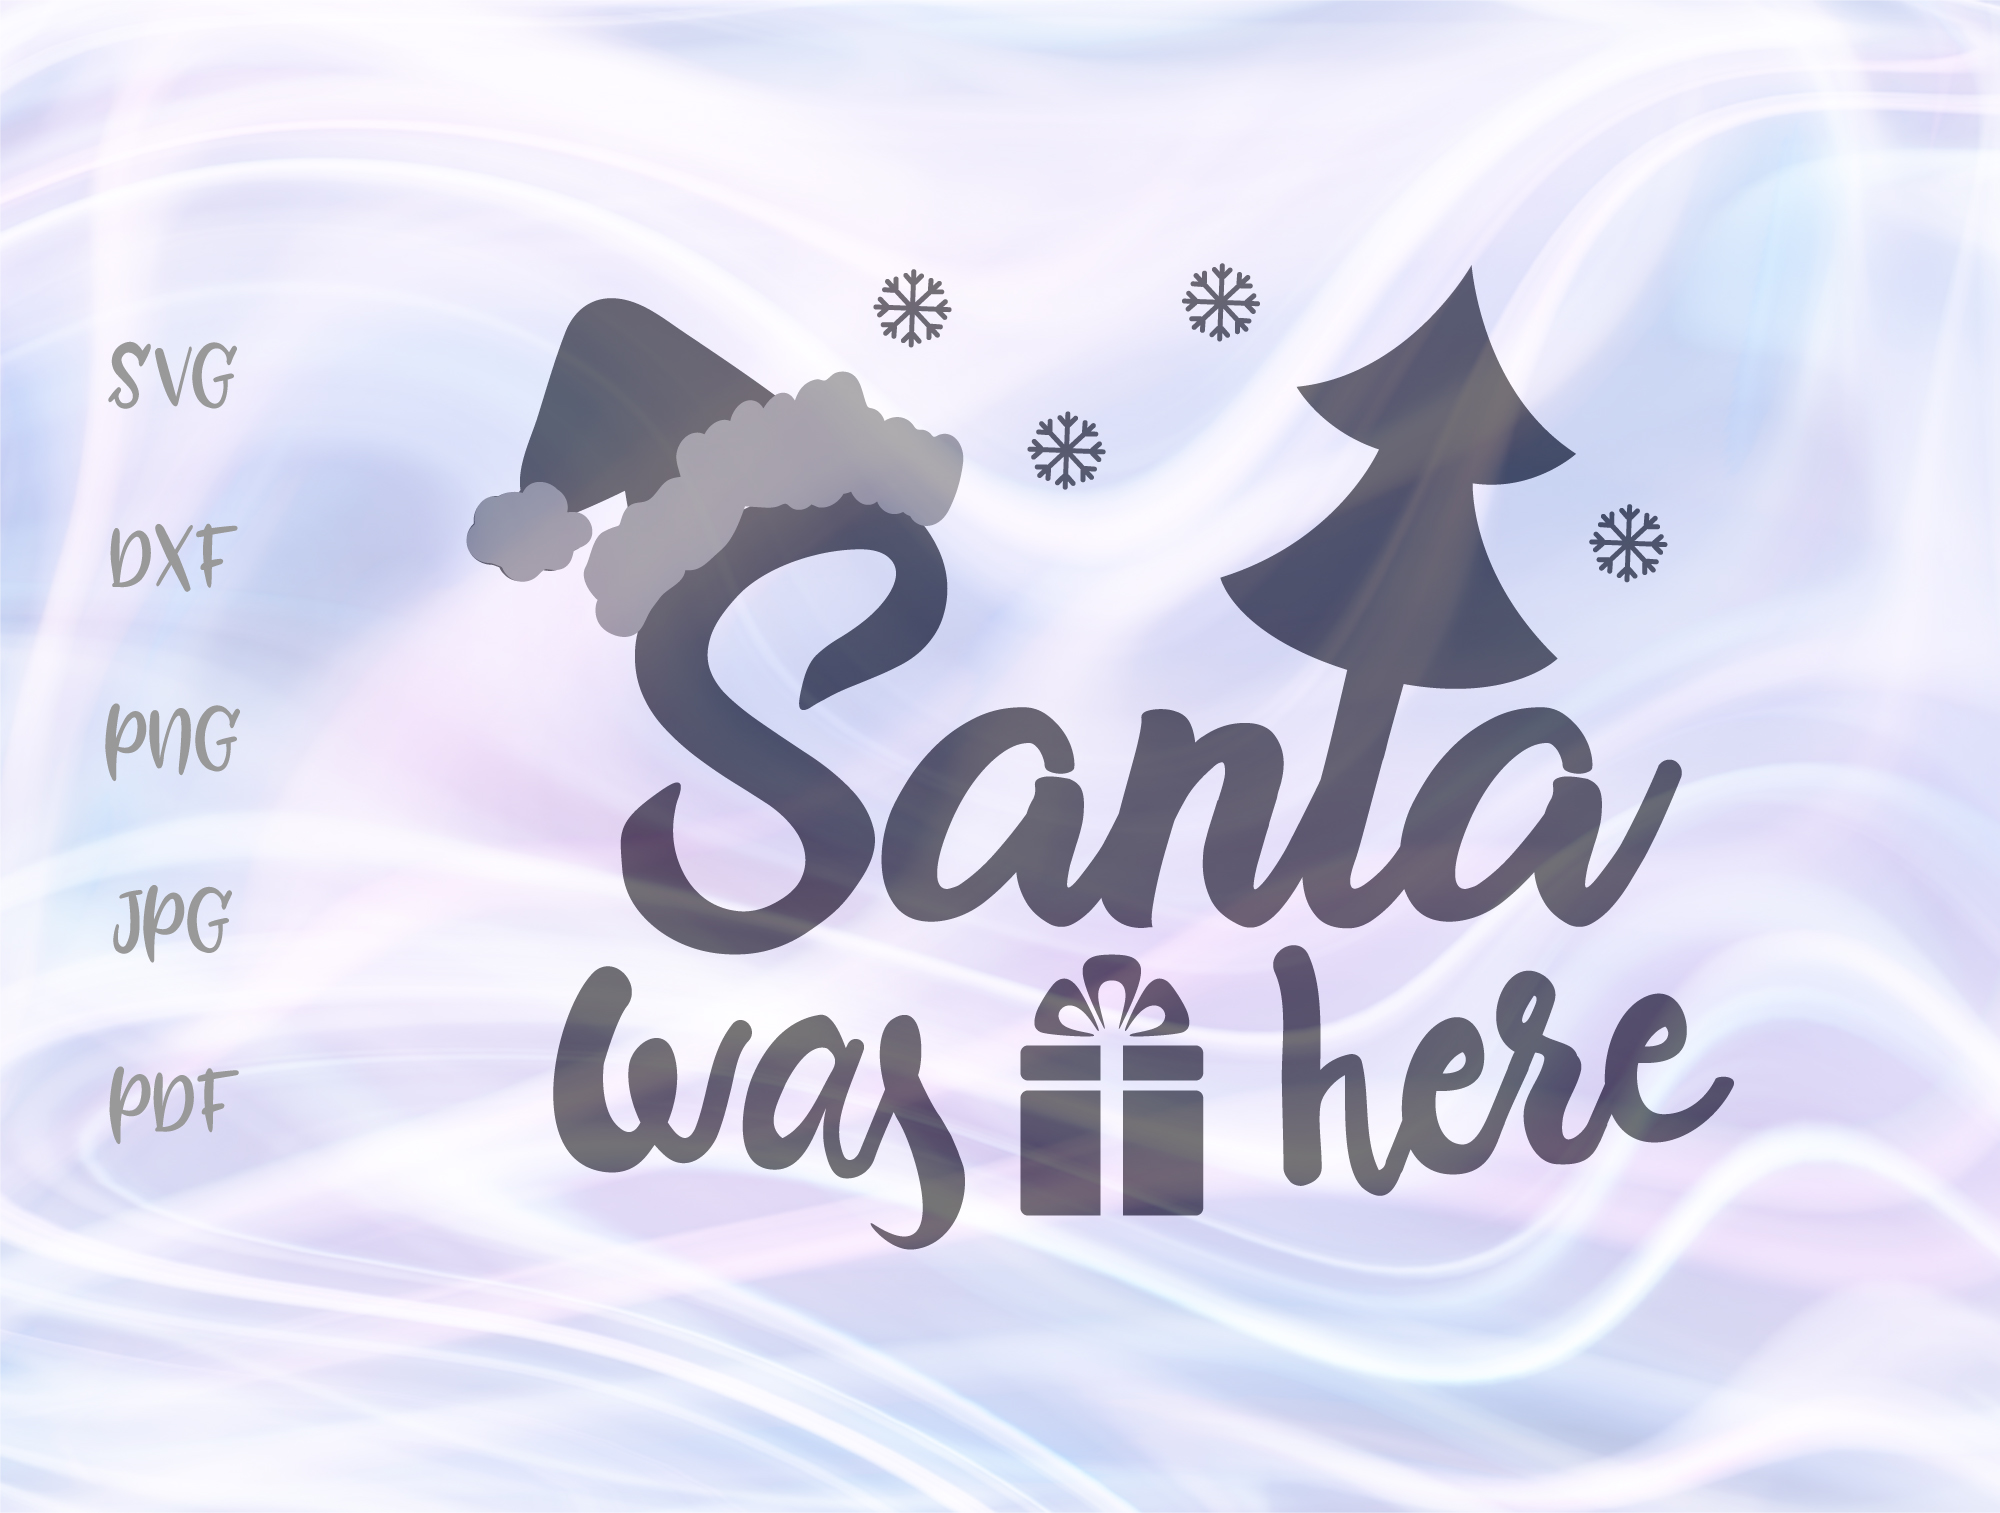 Download Free Santa Was Here Merry Christmas Graphic By Digitals By Hanna for Cricut Explore, Silhouette and other cutting machines.